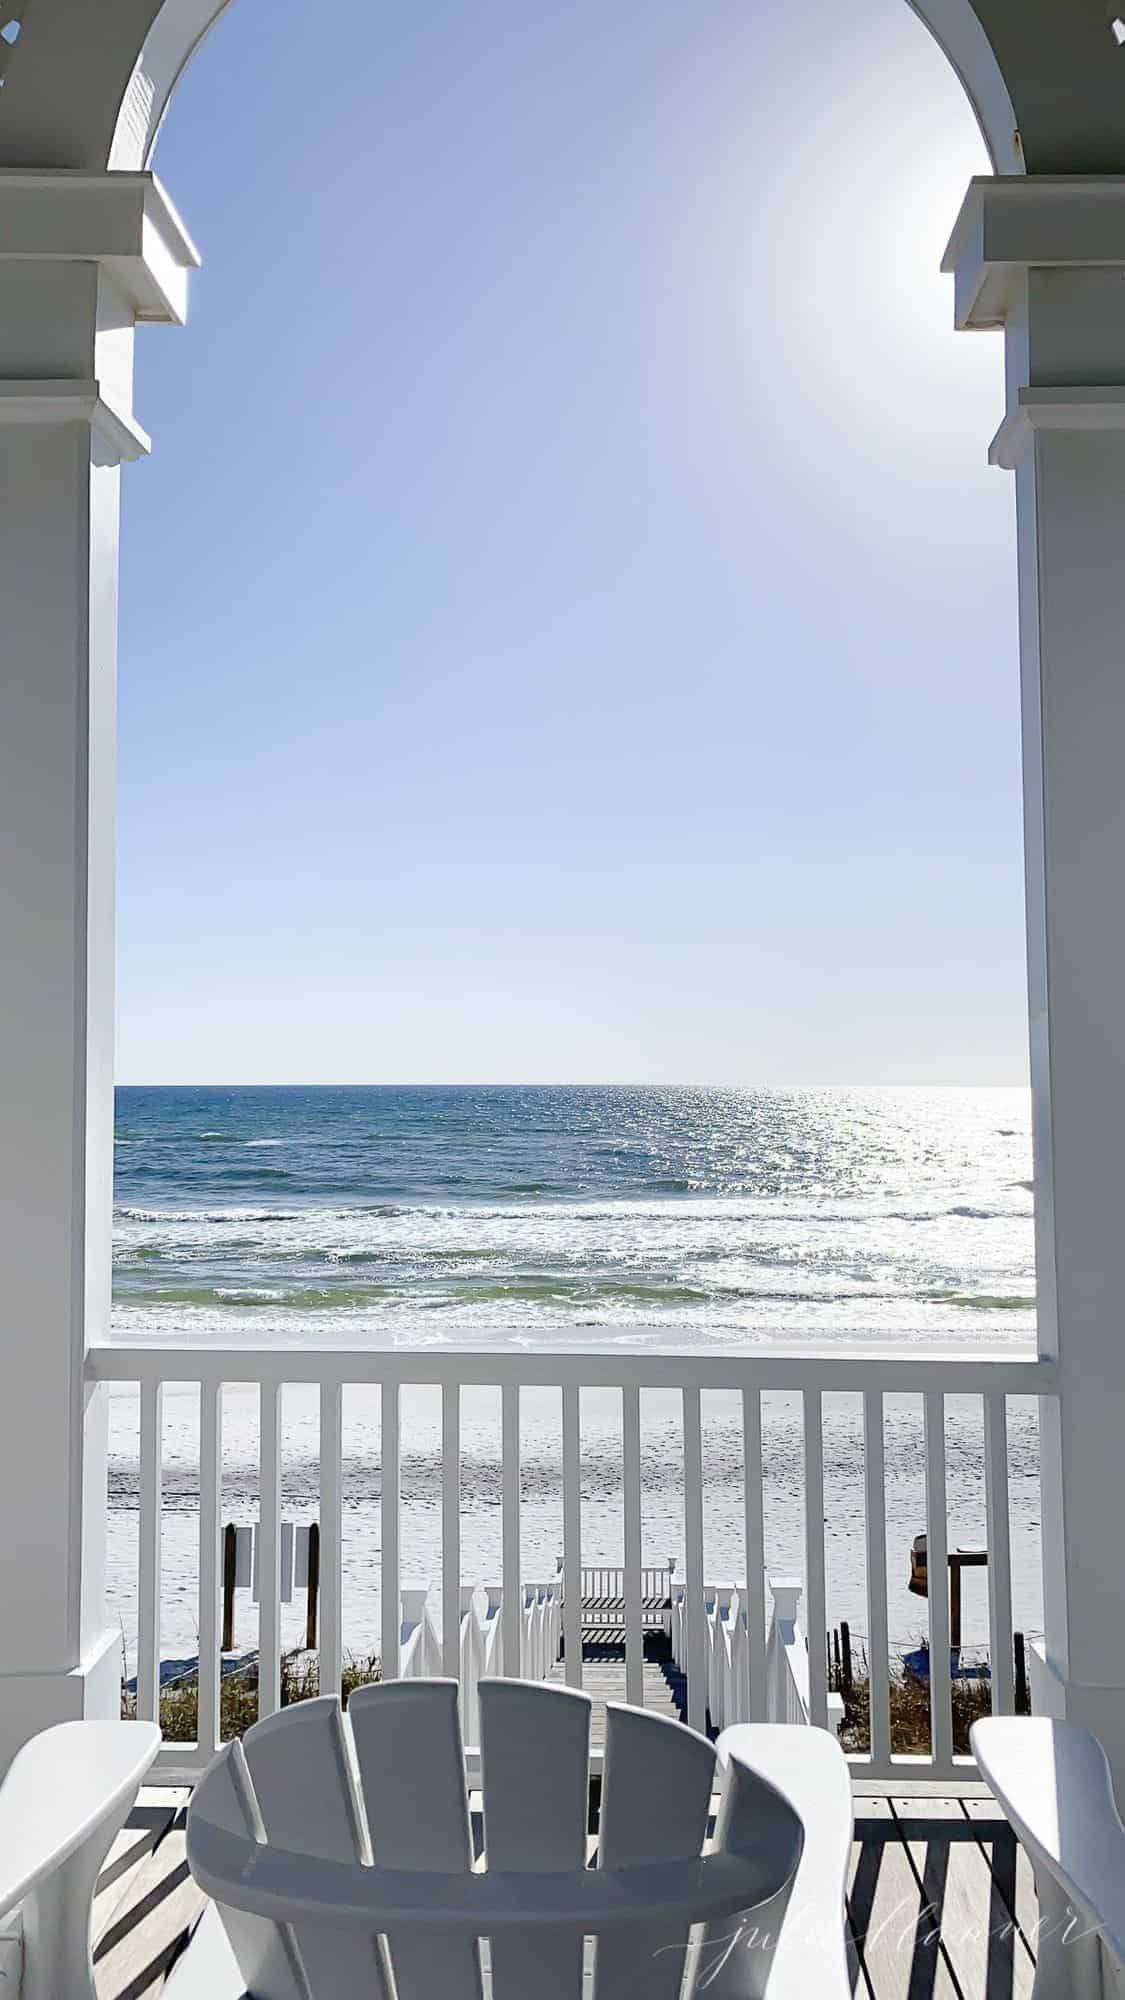 A beach scene looking through a pavilion with seating.